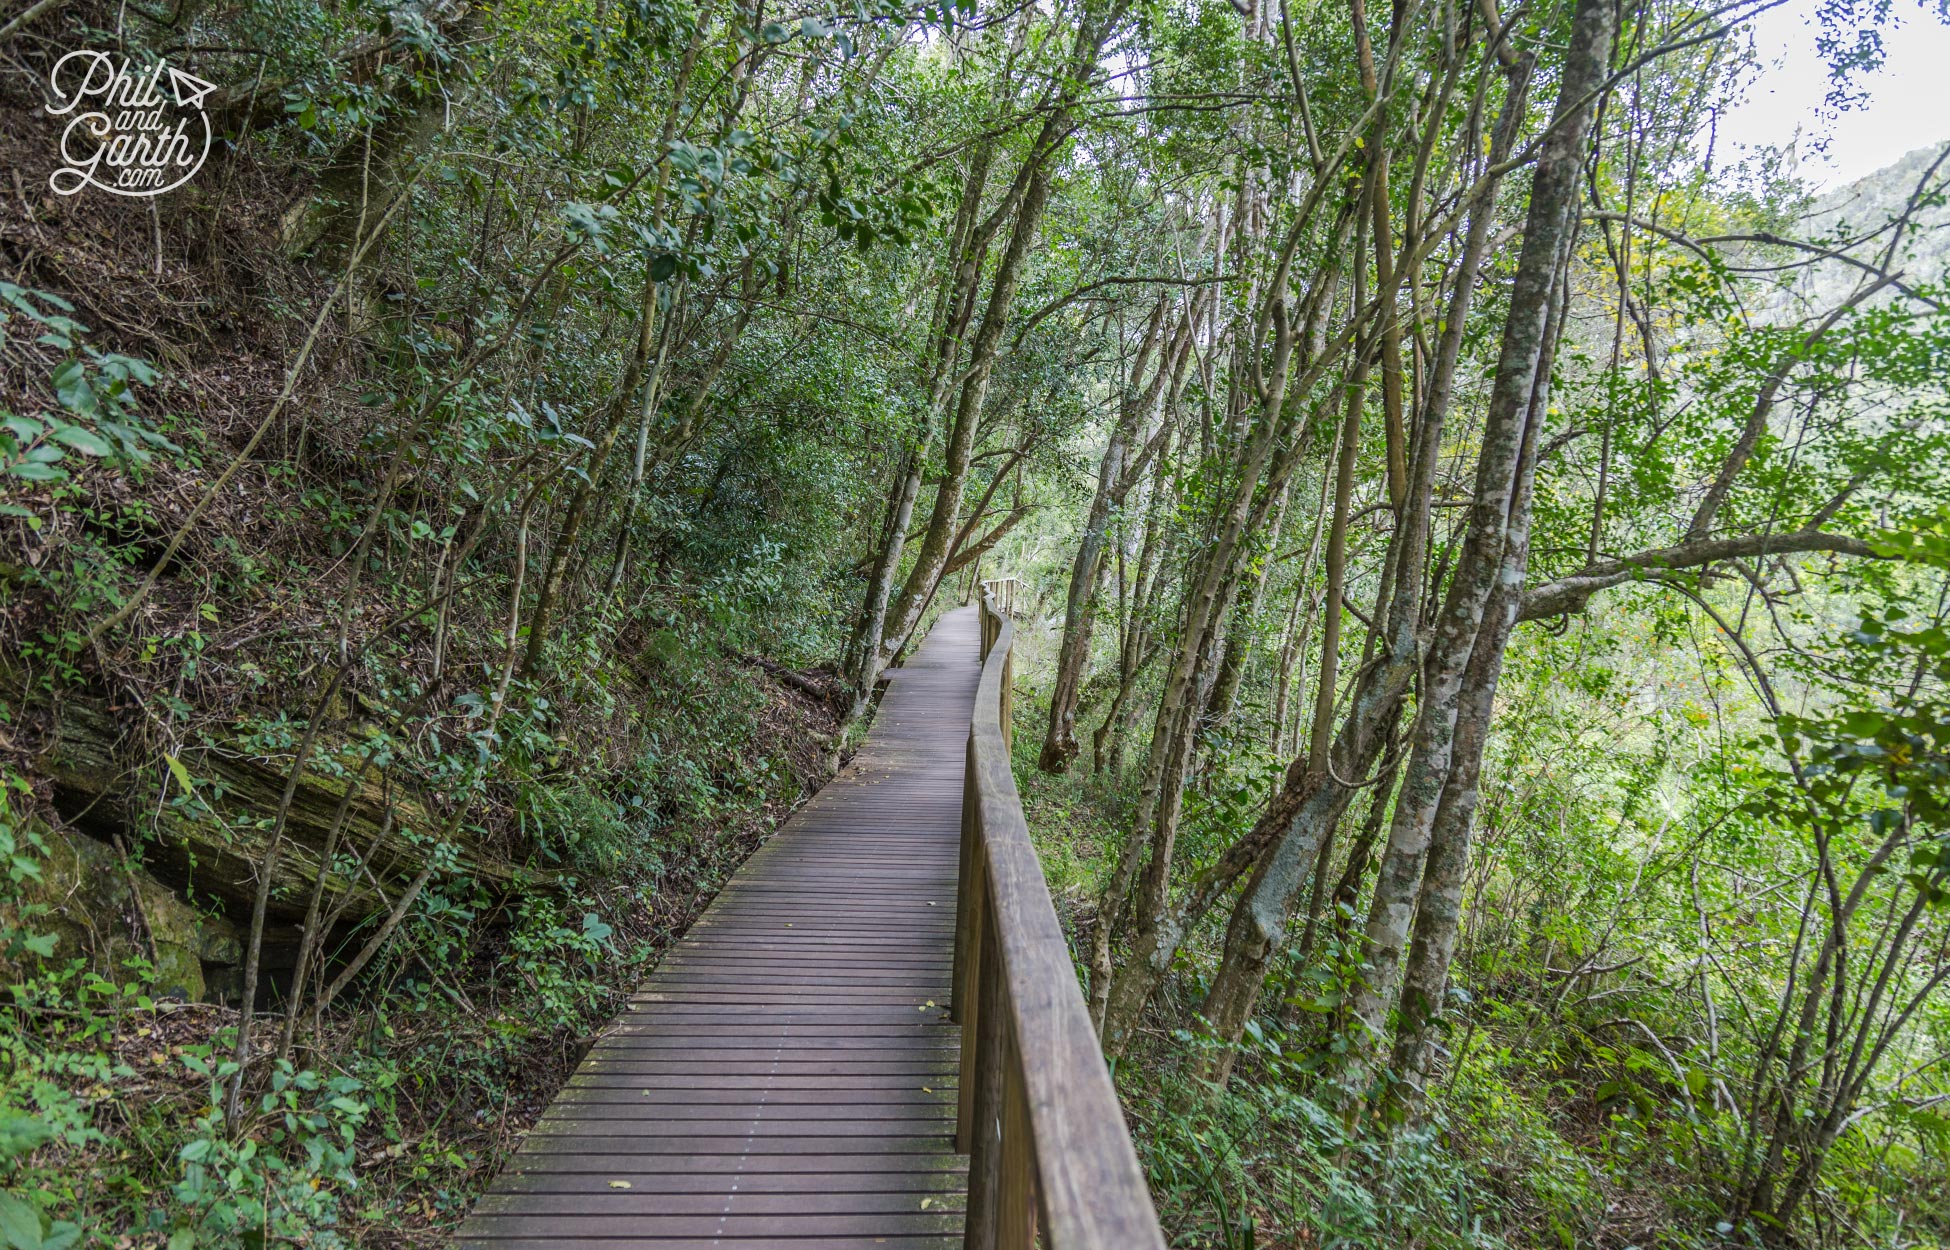 Long stretches of elevated walkways guide you to the waterfall